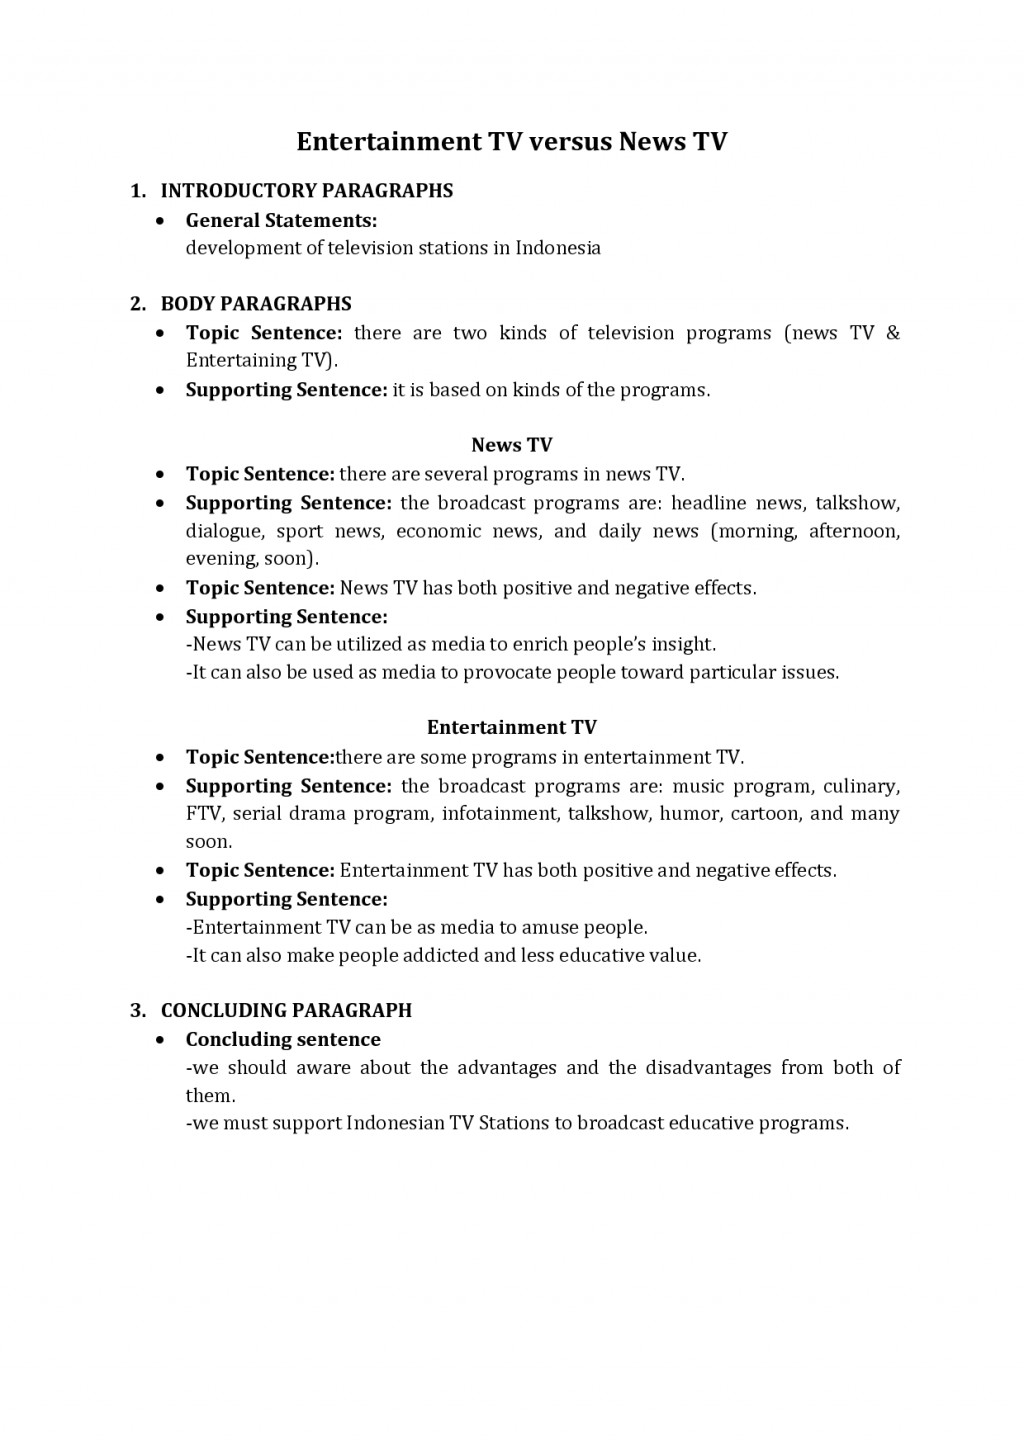 005 Fbunmxinib How To Write An Essay Outline Excellent Middle School A Term Paper Pdf Research Mla Format Large